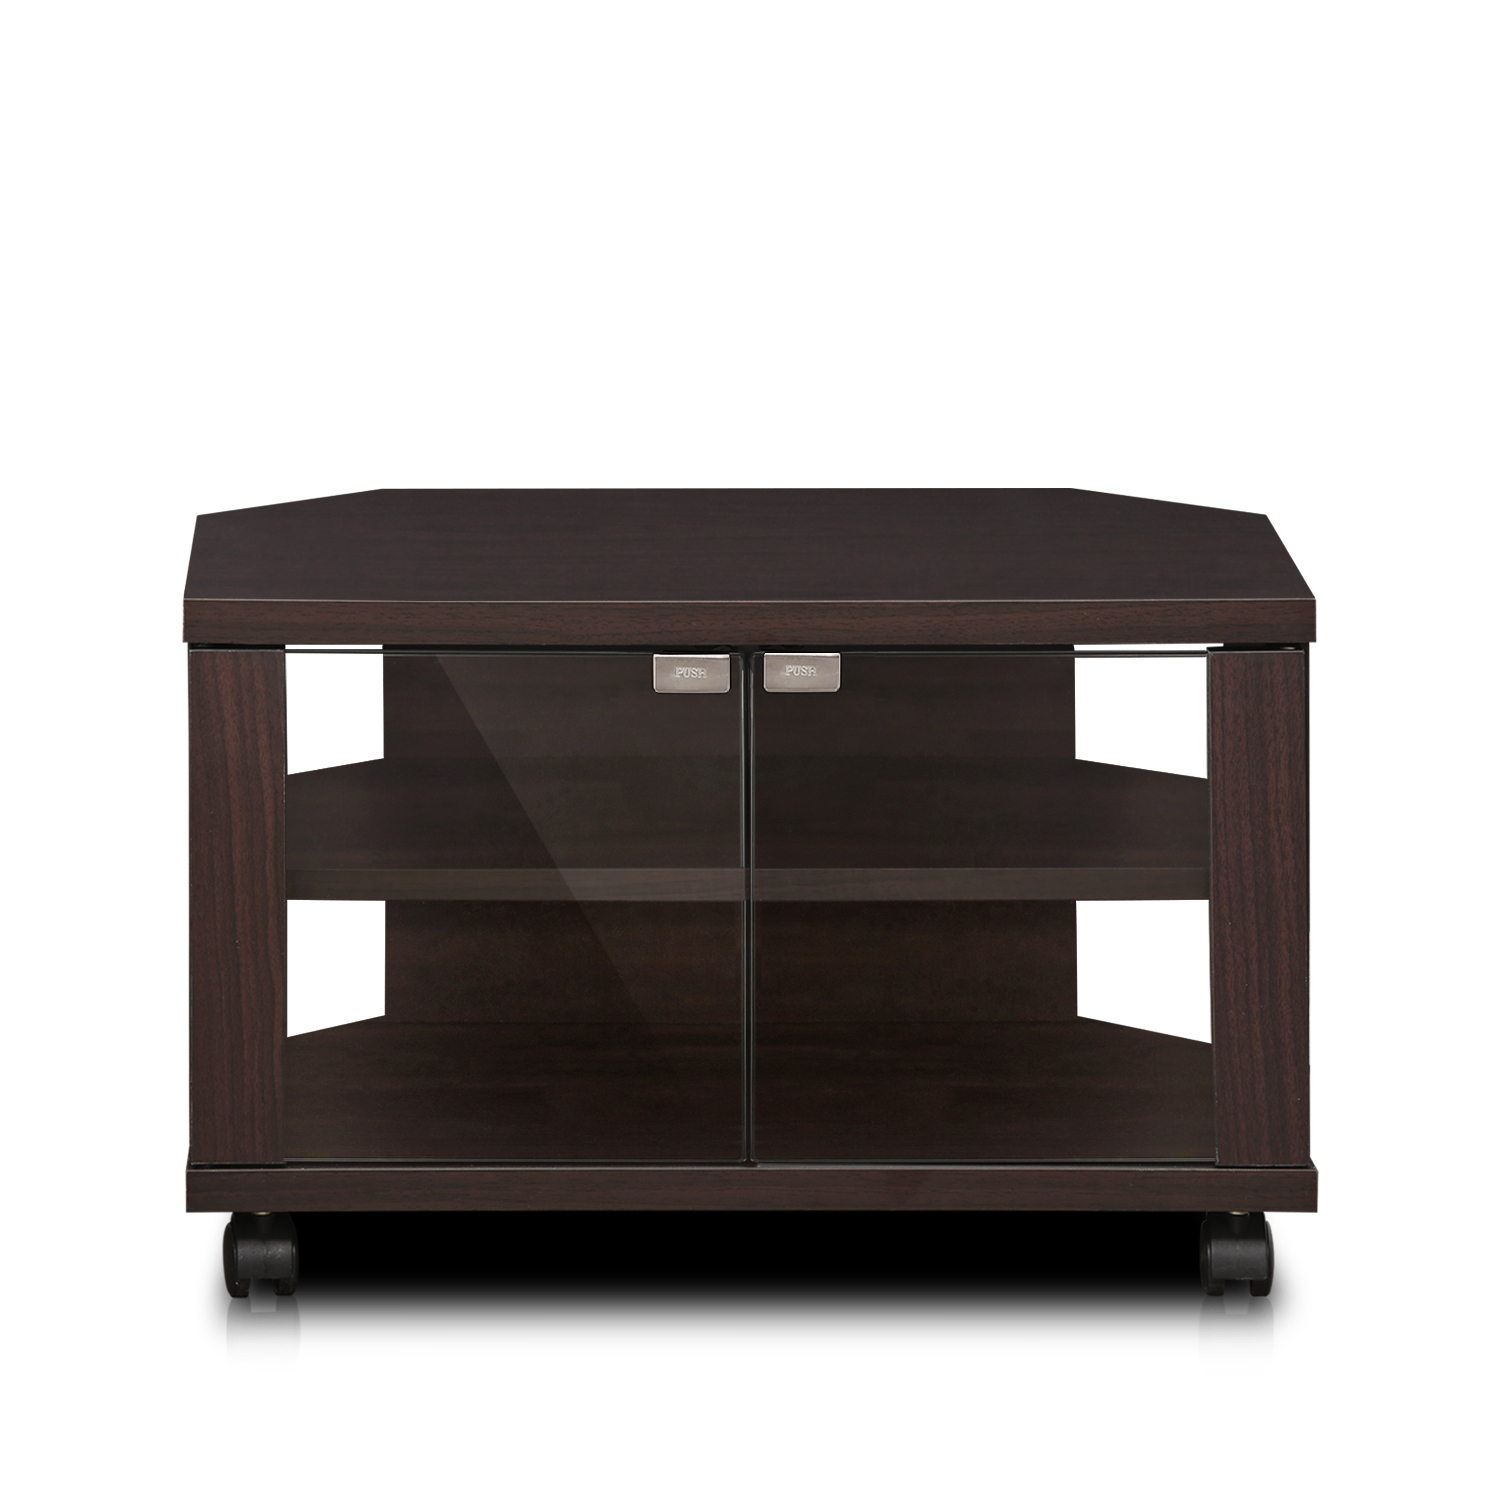 Furinno Indo Petite Tv Stand With Double Glass Doors And With Jakarta Tv Stands (View 2 of 15)